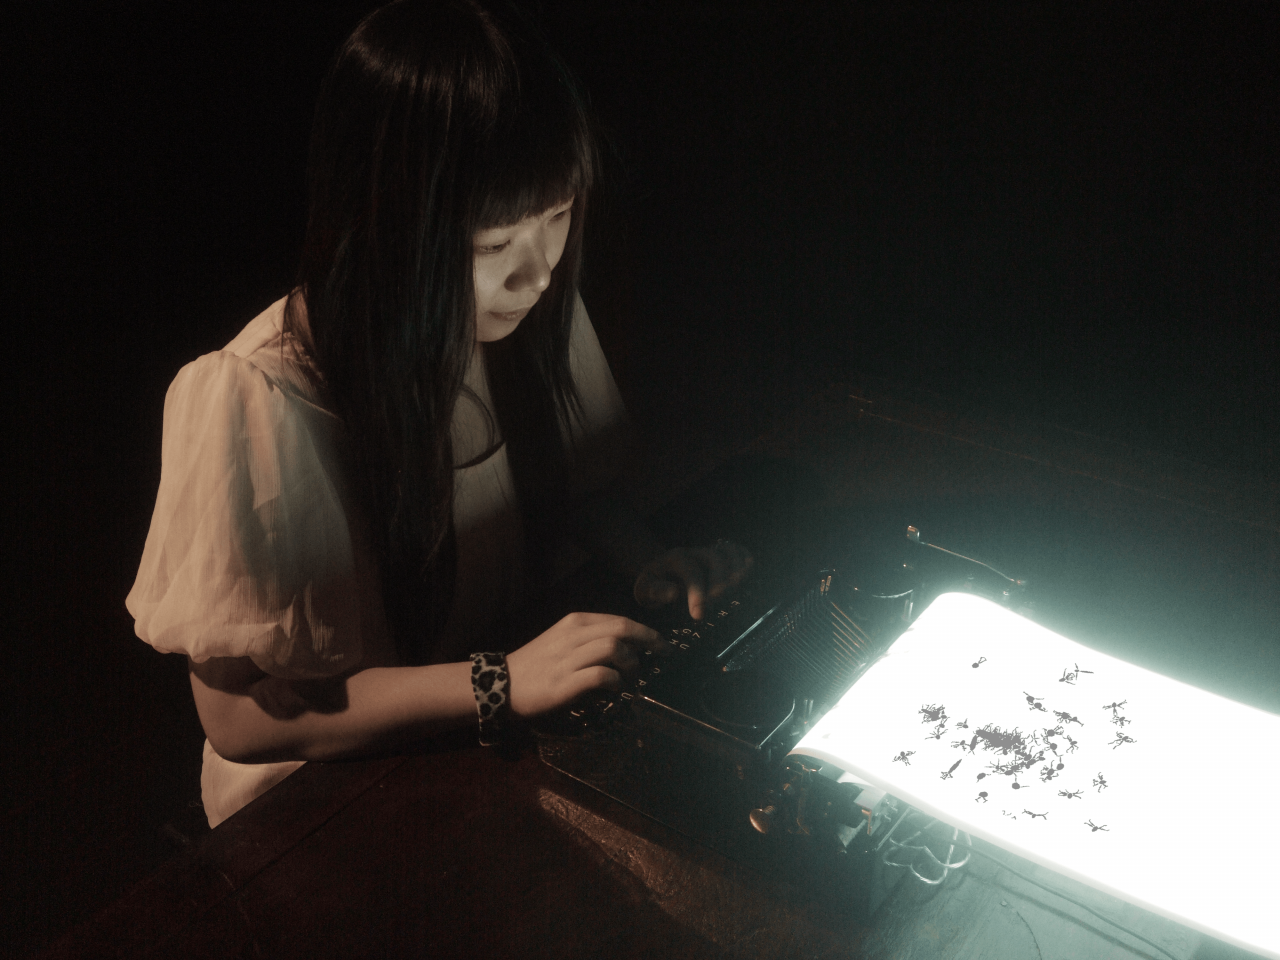 A woman is typing on a glowing typewriter